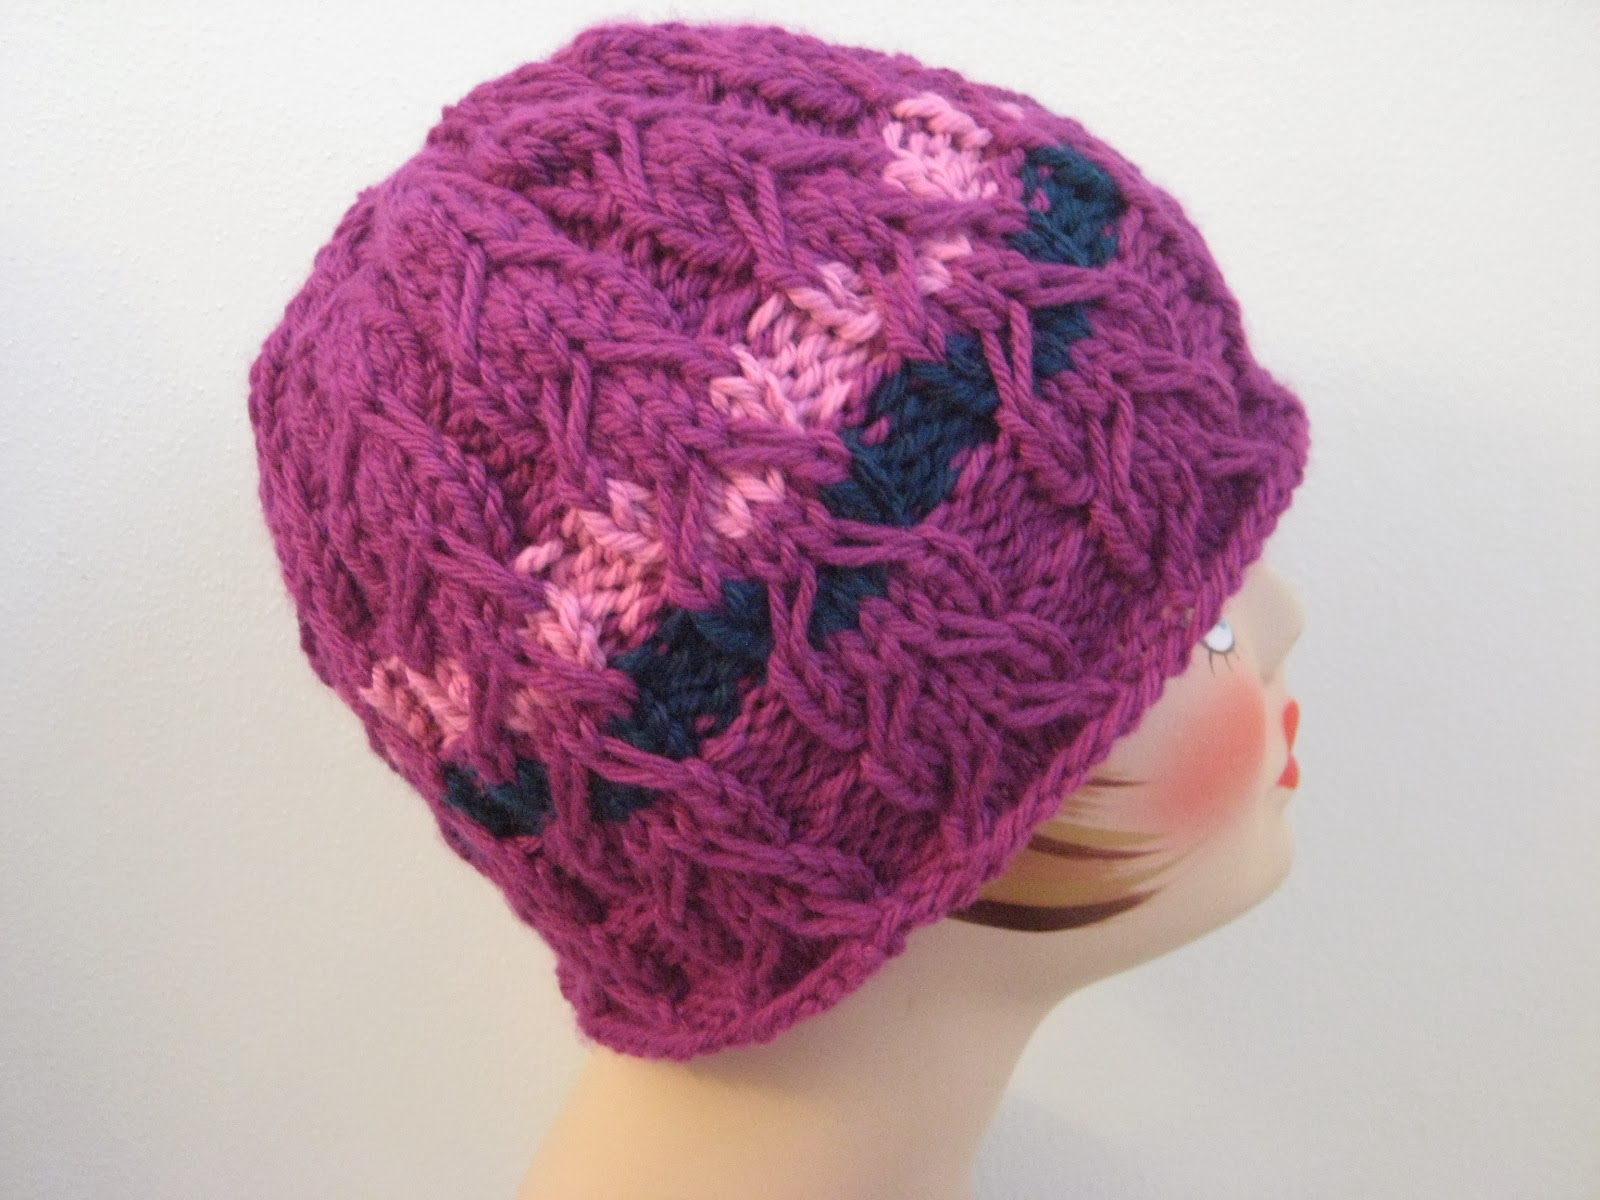 Knitting patterns galore slipped cable hat slipped cable hat free knitting pattern bankloansurffo Choice Image